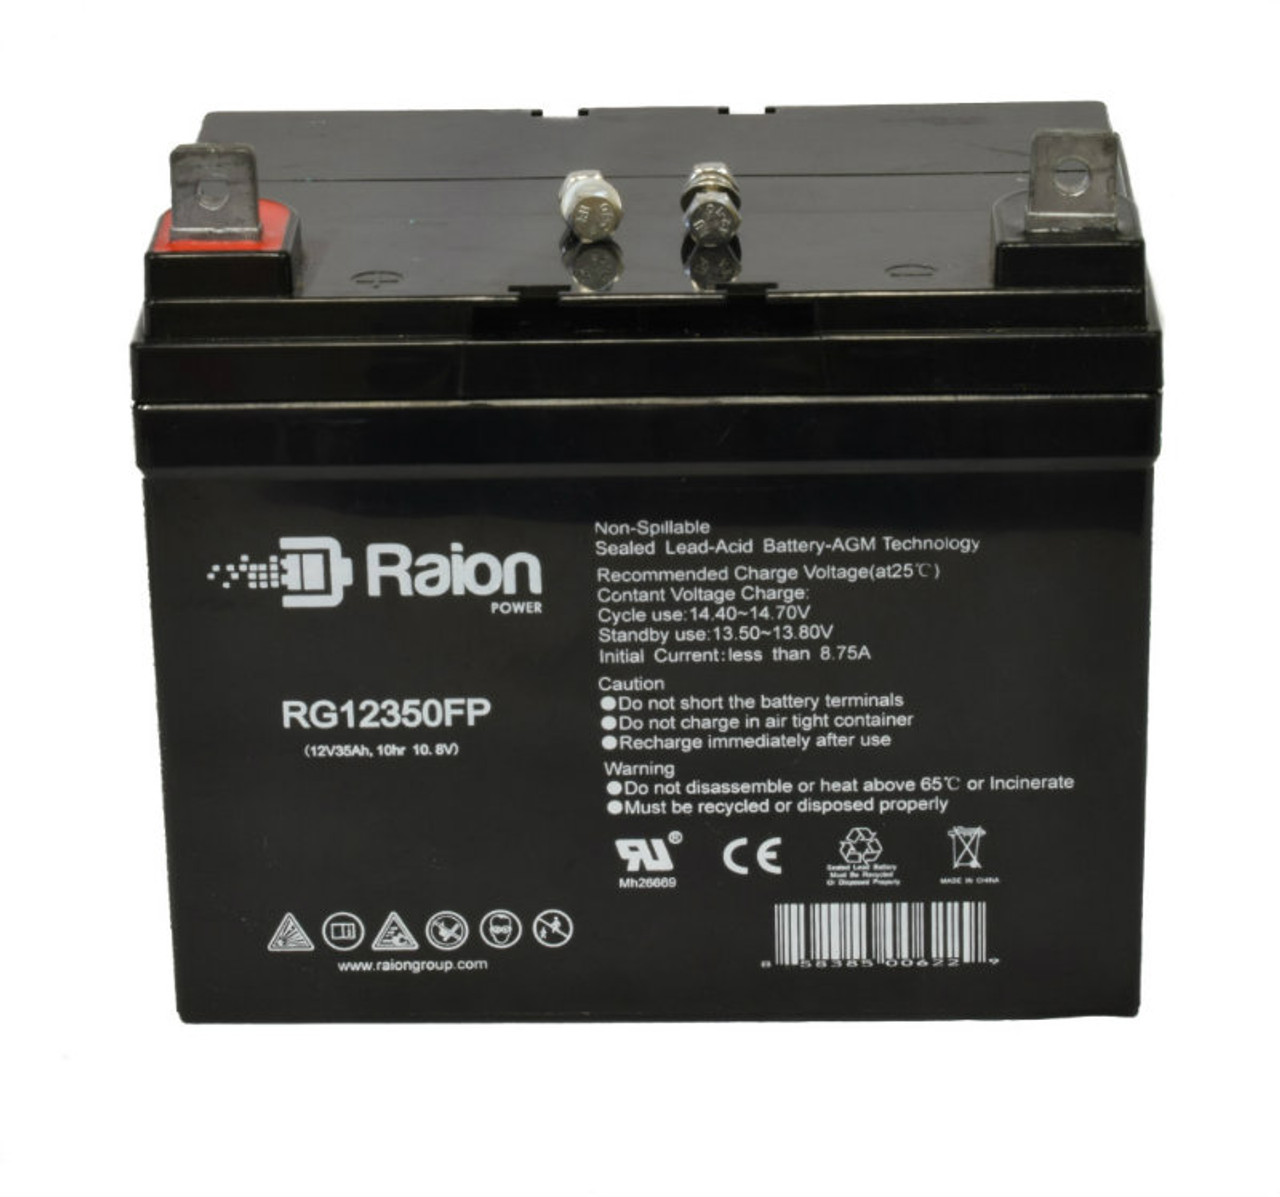 RG12350FP Sealed Lead Acid Battery Pack For Falcon Rehab ACT Ultra Low Mobility Scooter